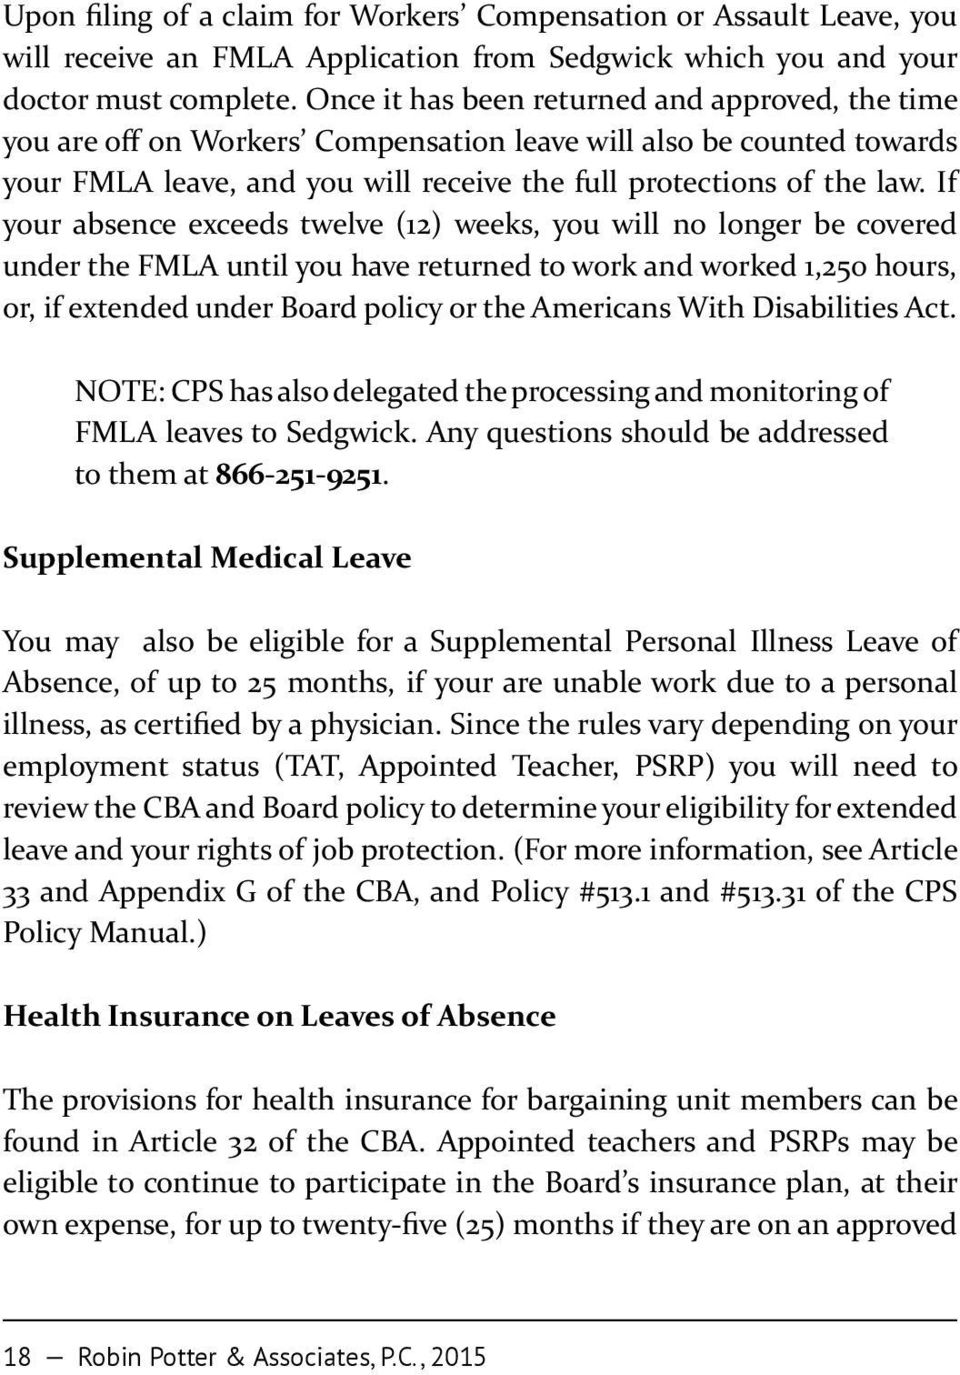 If your absence exceeds twelve (12) weeks, you will no longer be covered under the FMLA until you have returned to work and worked 1,250 hours, or, if extended under Board policy or the Americans